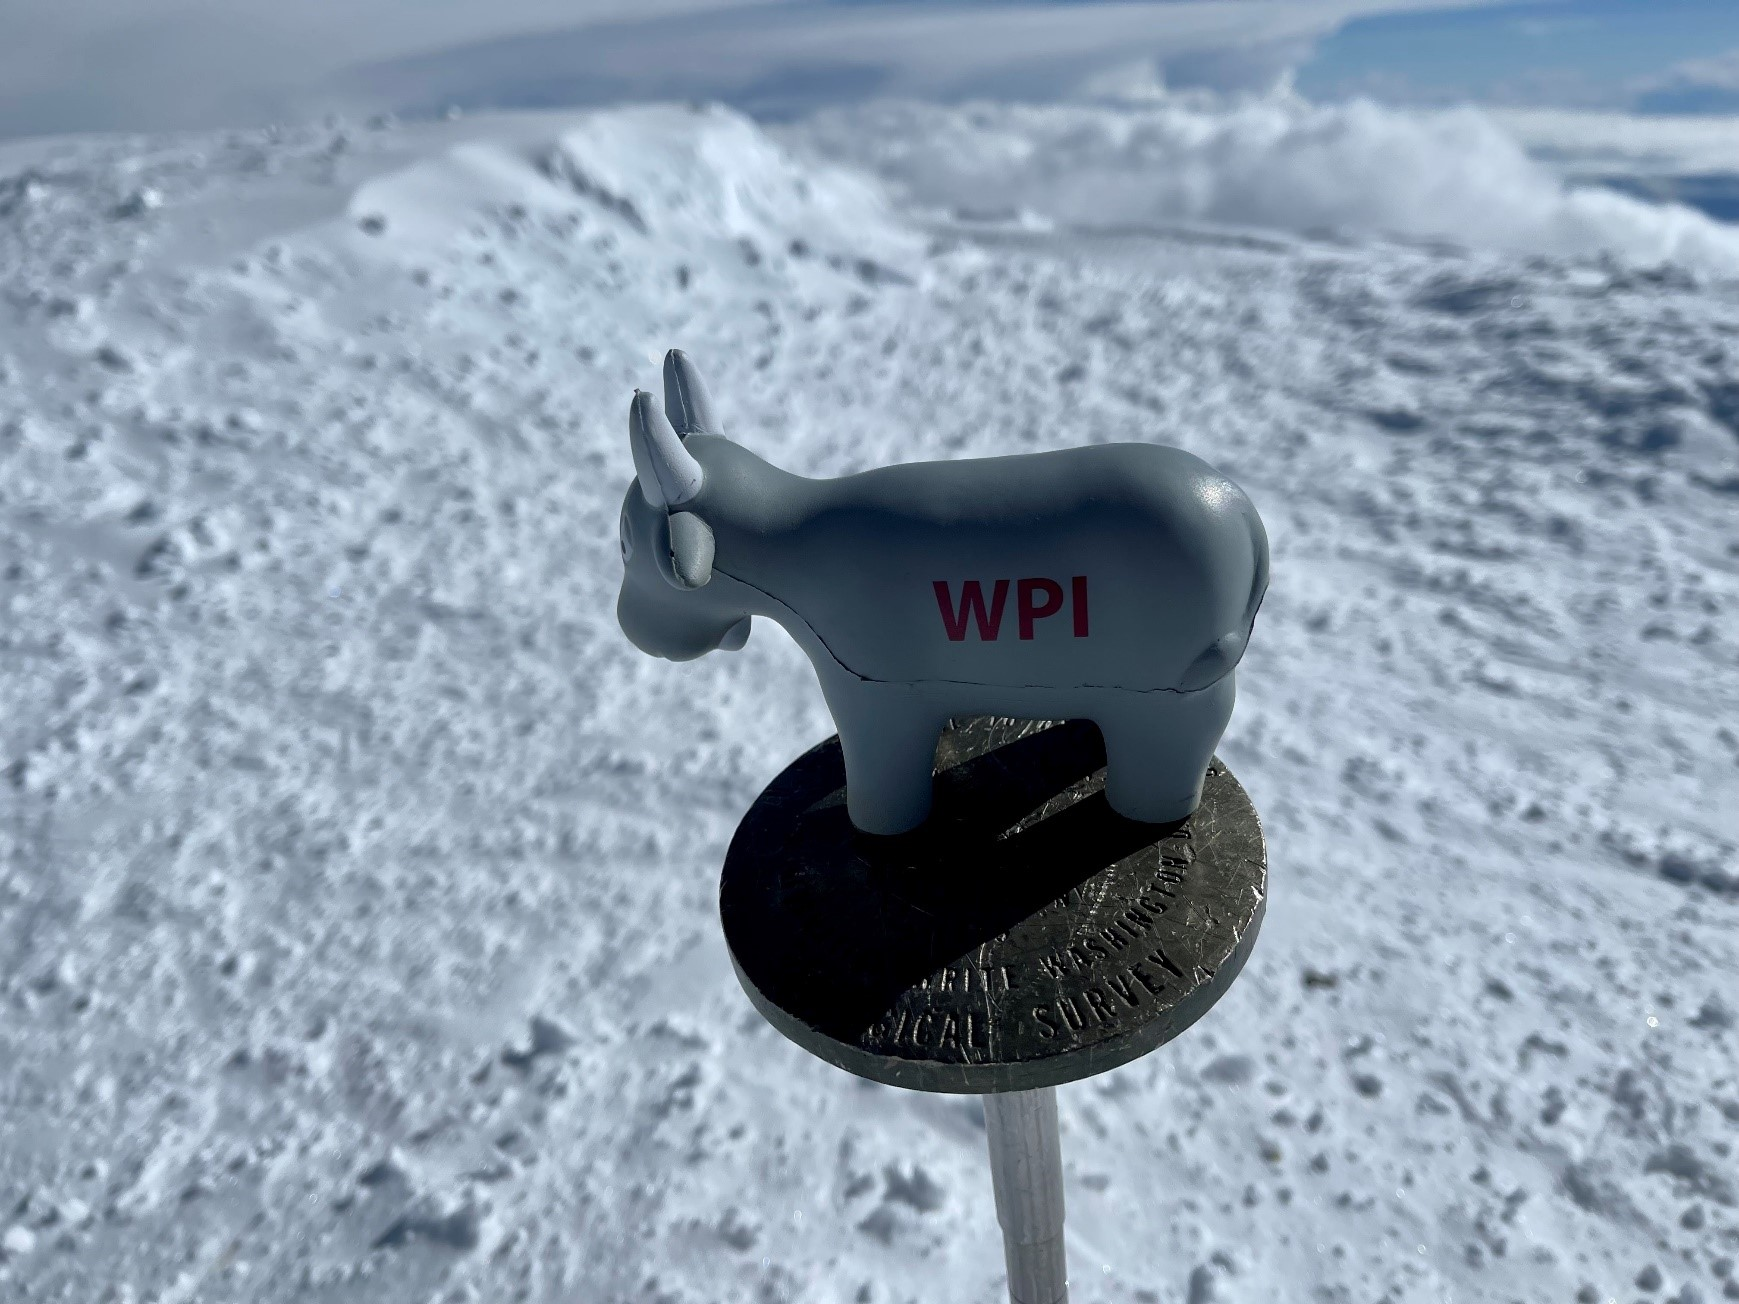 Gompei sits on the summit marker atop Denali, more than 20,000 feet above sea level